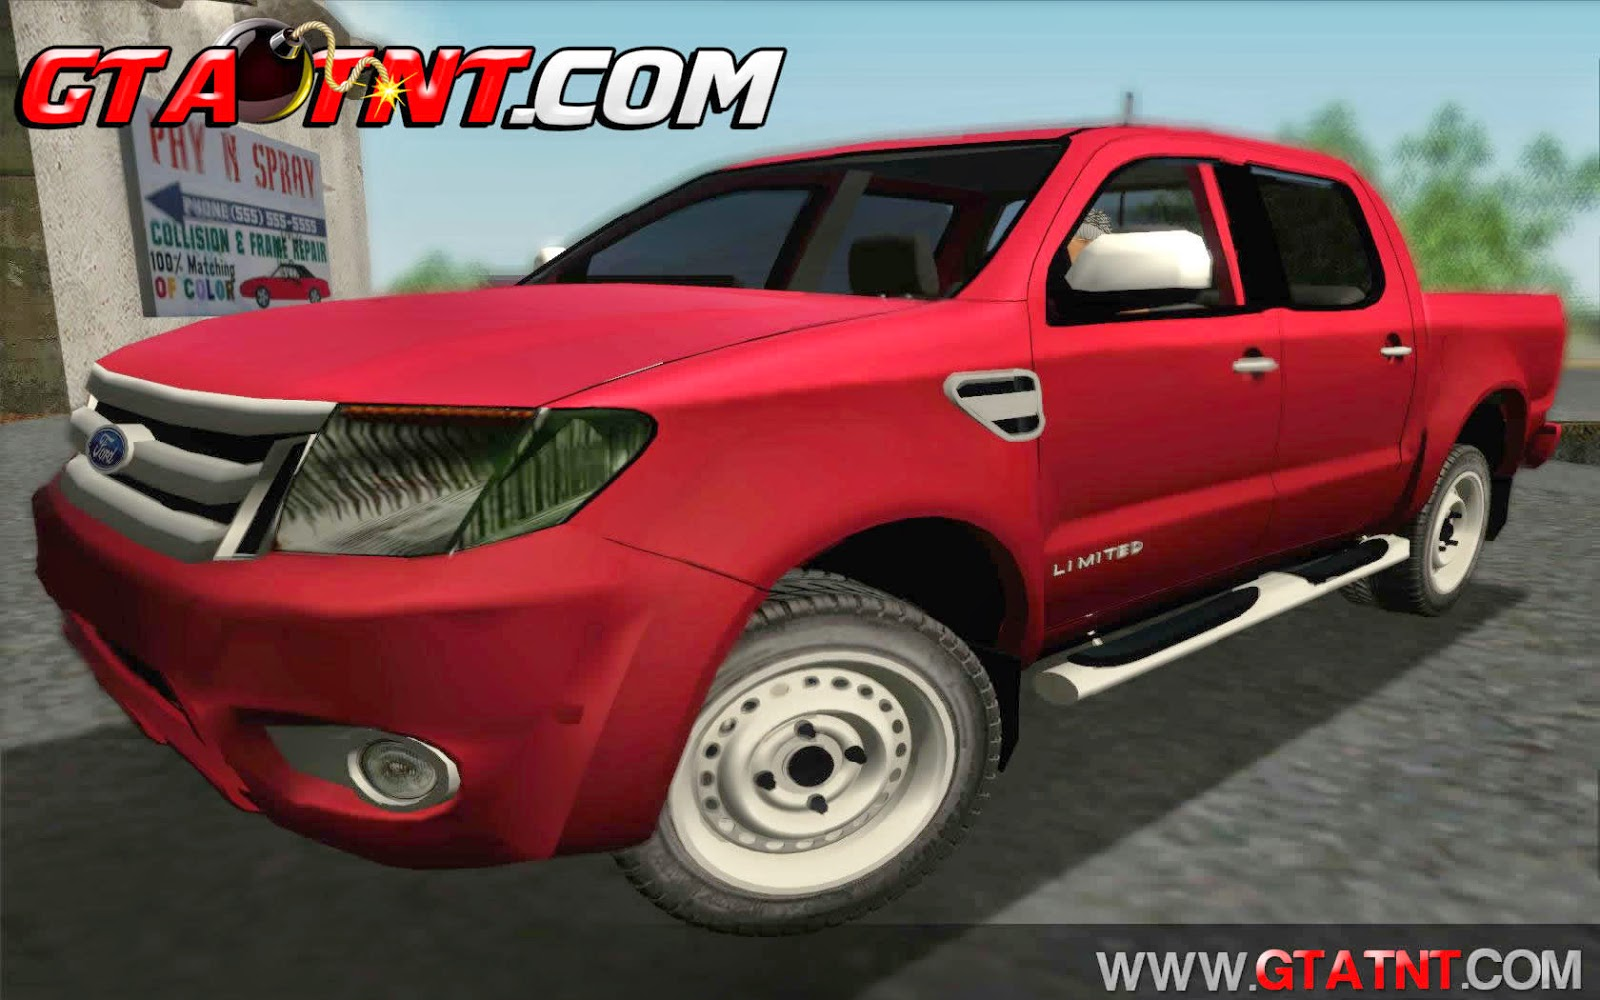 Ford Ranger Limited 2014 para GTA San Aandreas